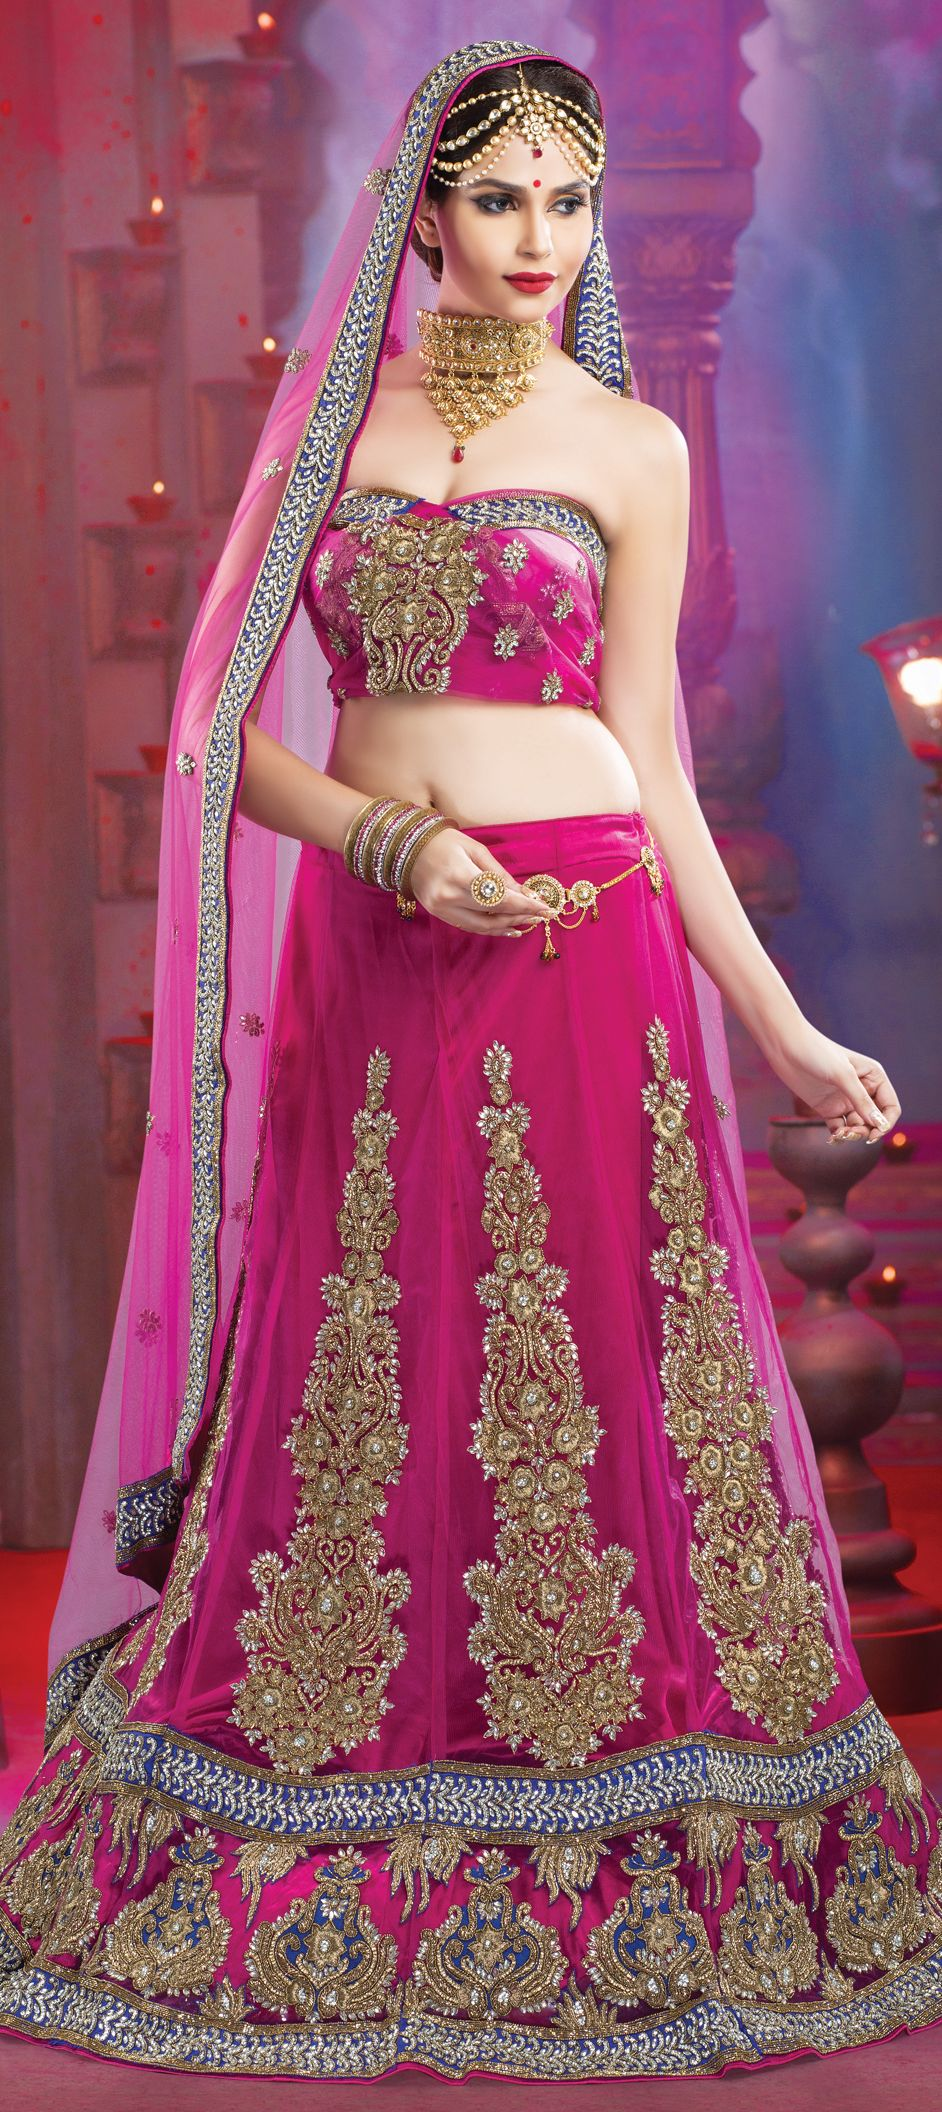 149114: Pink and Majenta color family Bridal Lehenga. | Vestidos ...